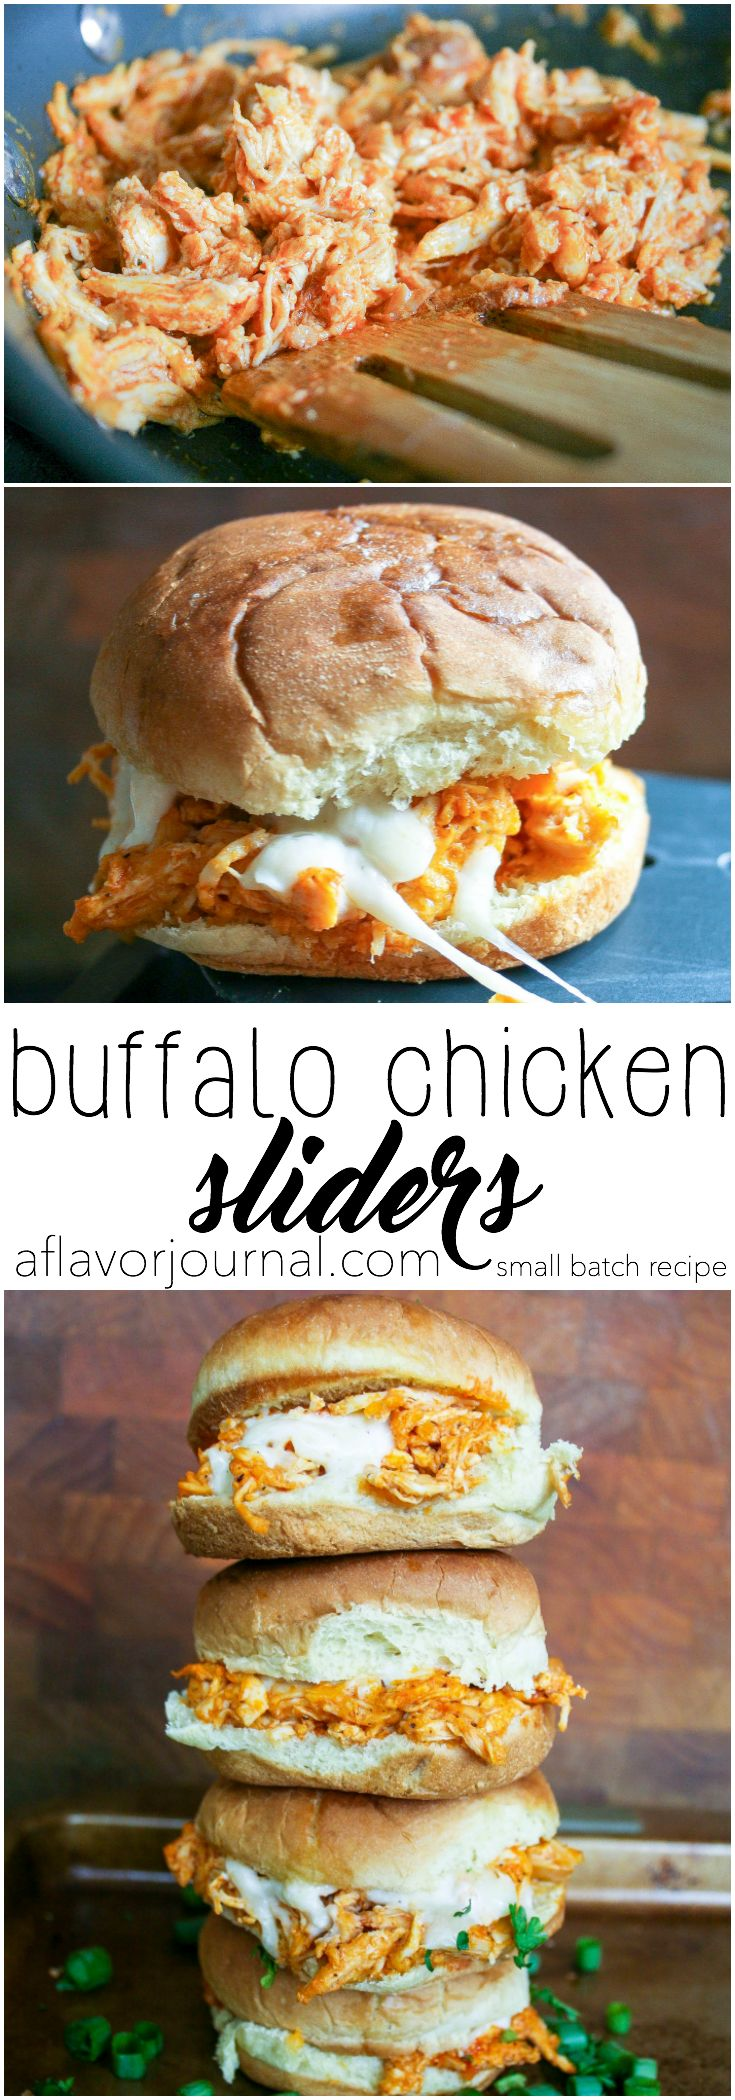 EASY buffalo chicken sliders! this recipe is for two, but can easily be doubled, tripled, or quadrupled! spicy chicken and cheese melted on sliders buns ... doesn't get much better. :) buffalo chicken sliders : a small batch recipe for two. http://aflavorjournal.com/buffalo-chicken-sliders/